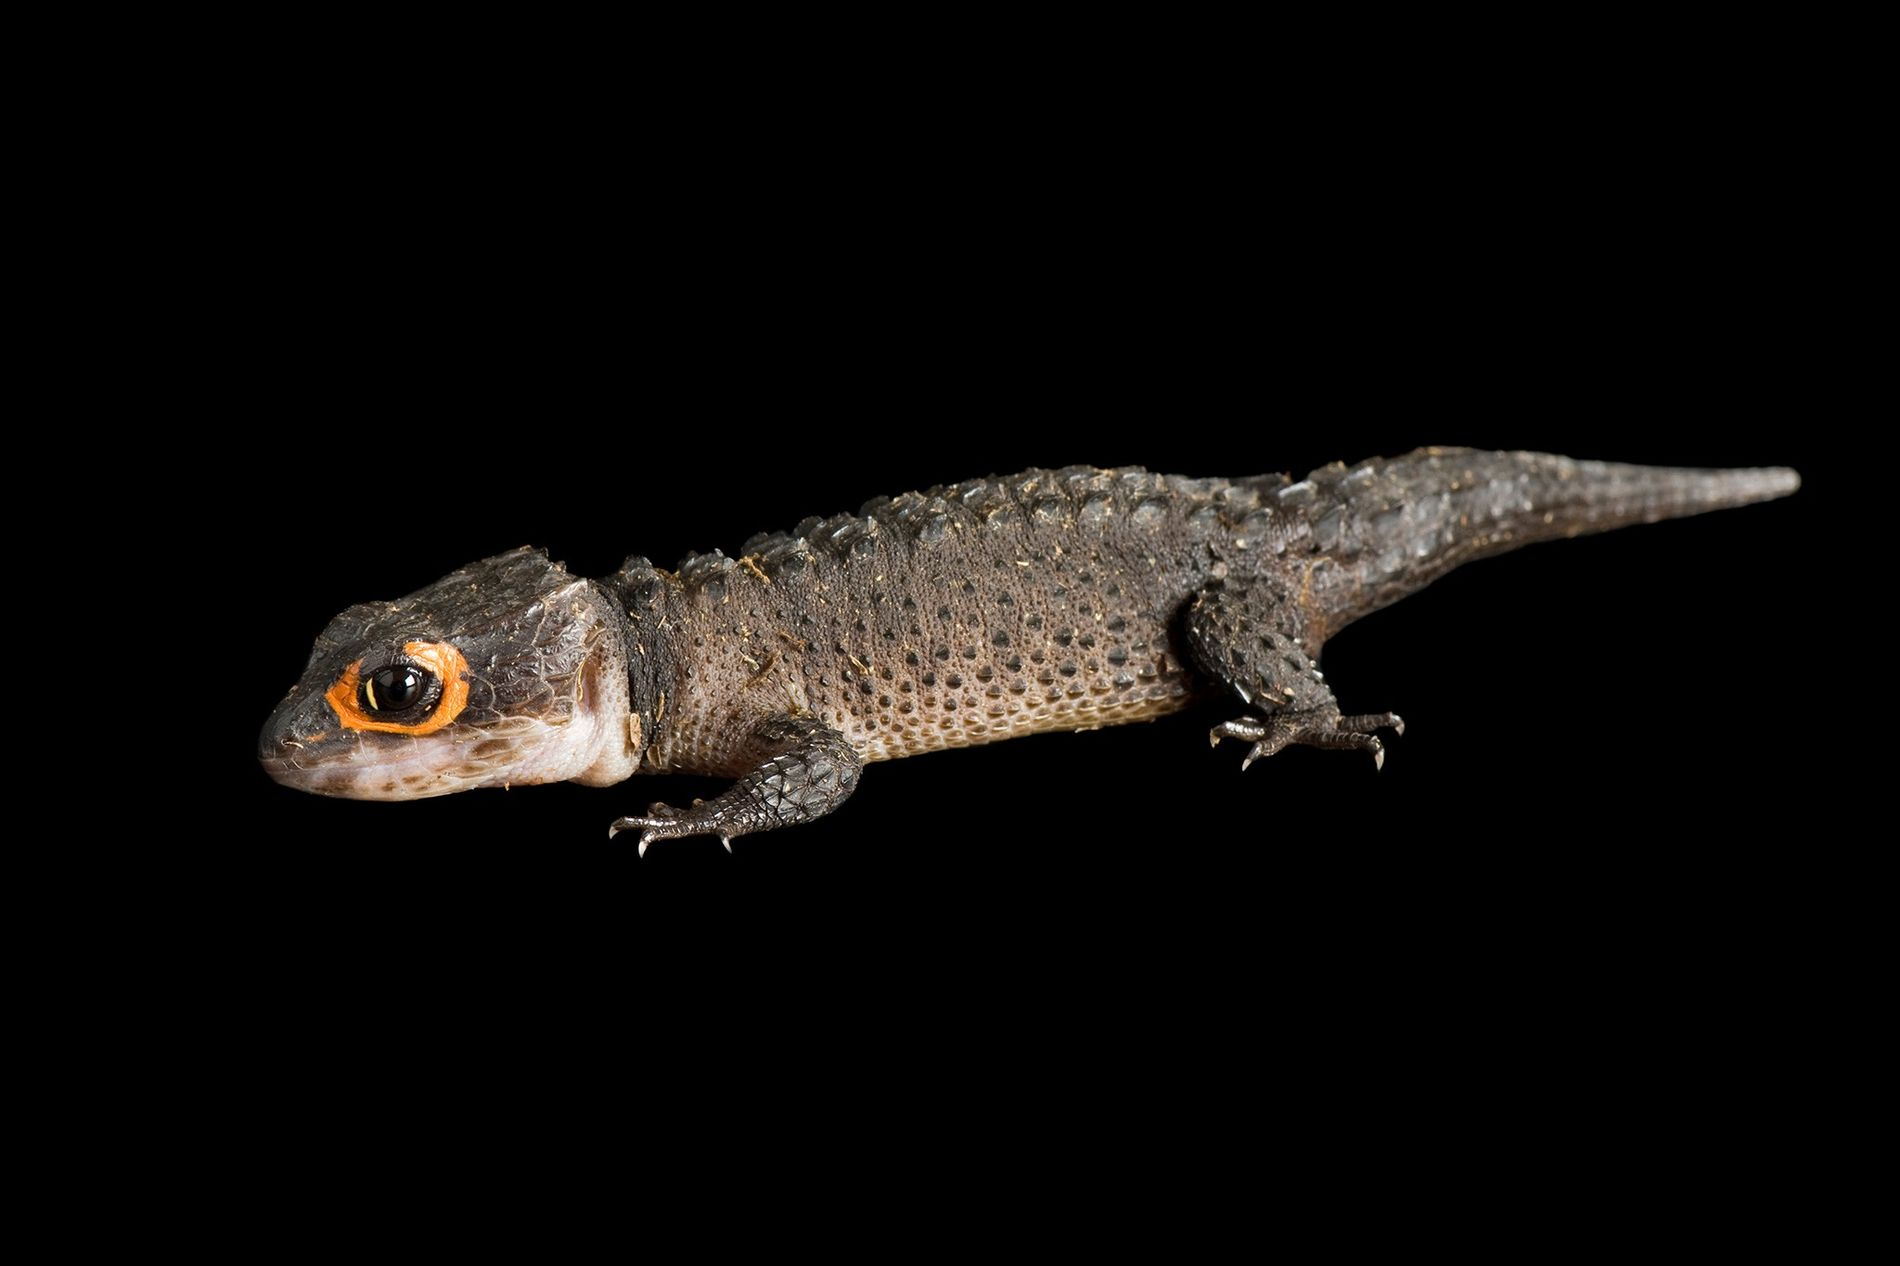 Crocodile skinks have become popular pets, yet no one knows how many of these small lizards ...